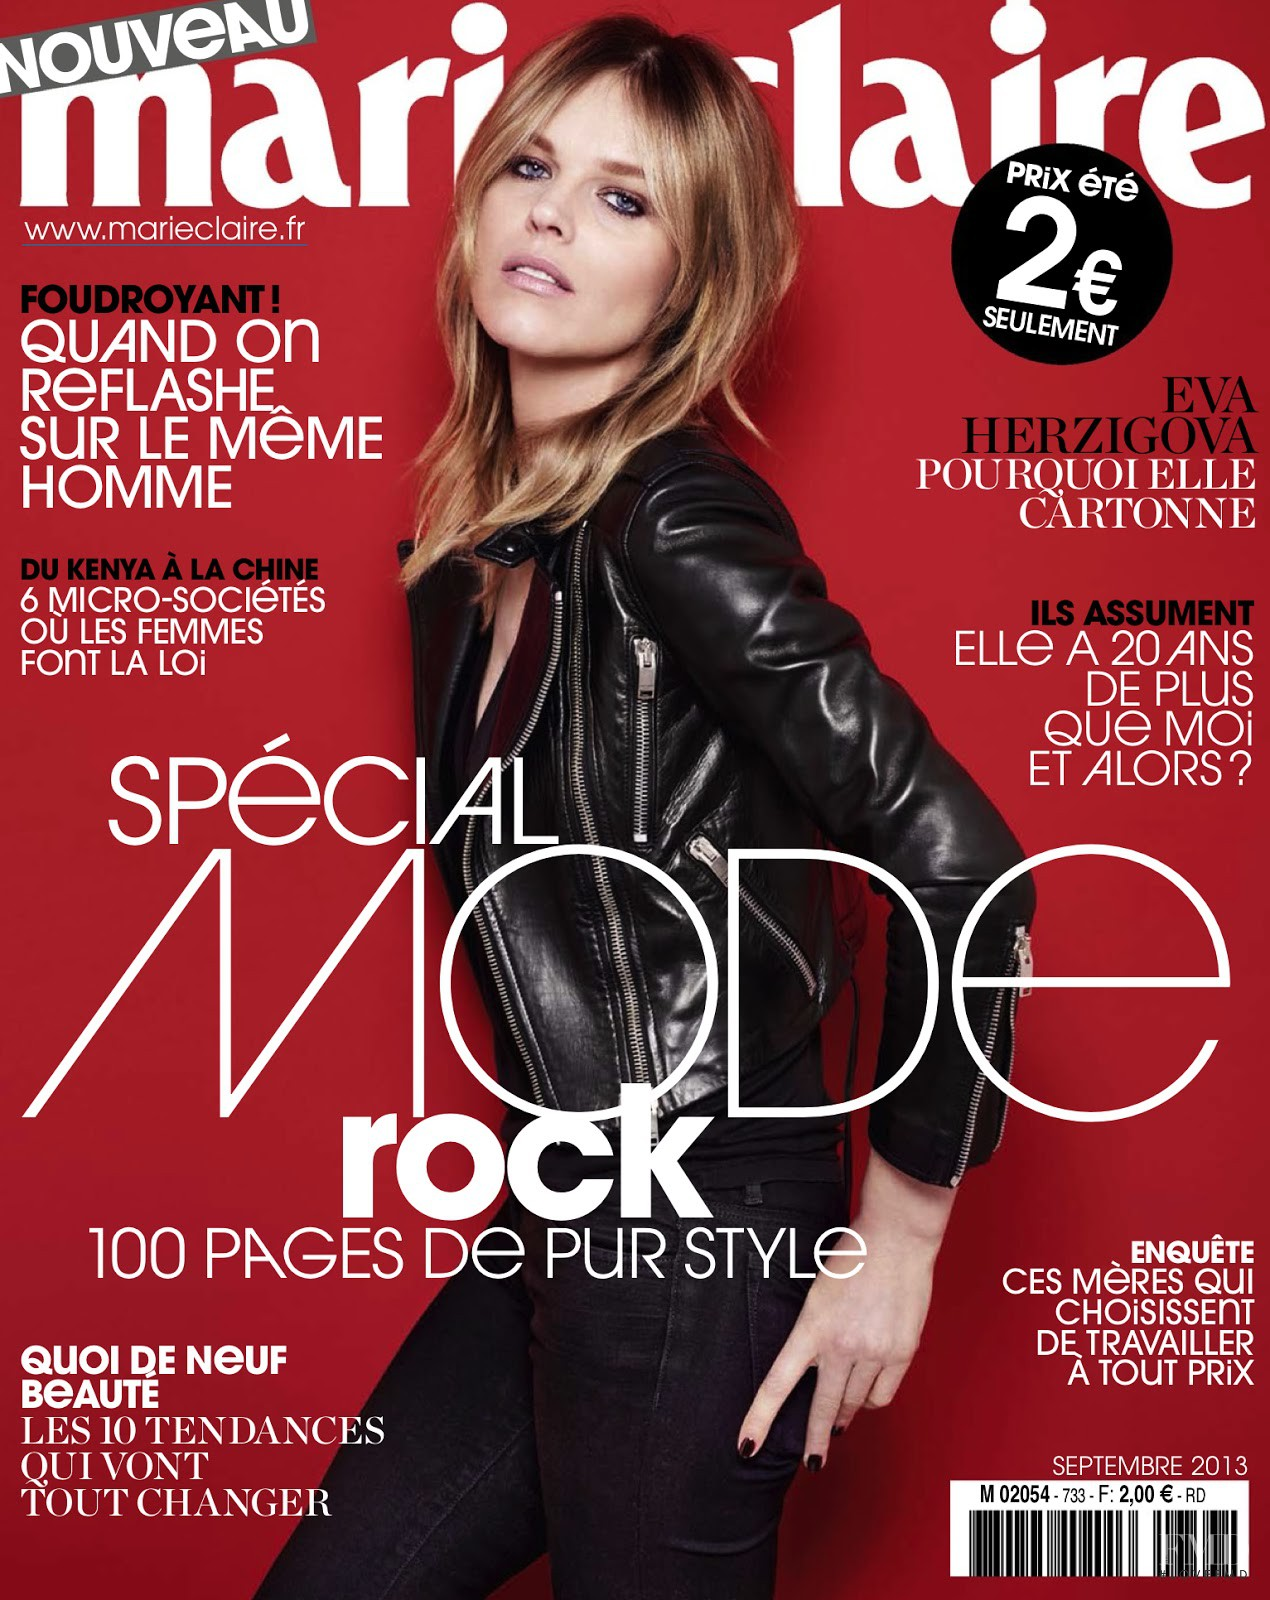 cover of marie claire france with eva herzigova september 2013 id 22682 magazines the fmd. Black Bedroom Furniture Sets. Home Design Ideas